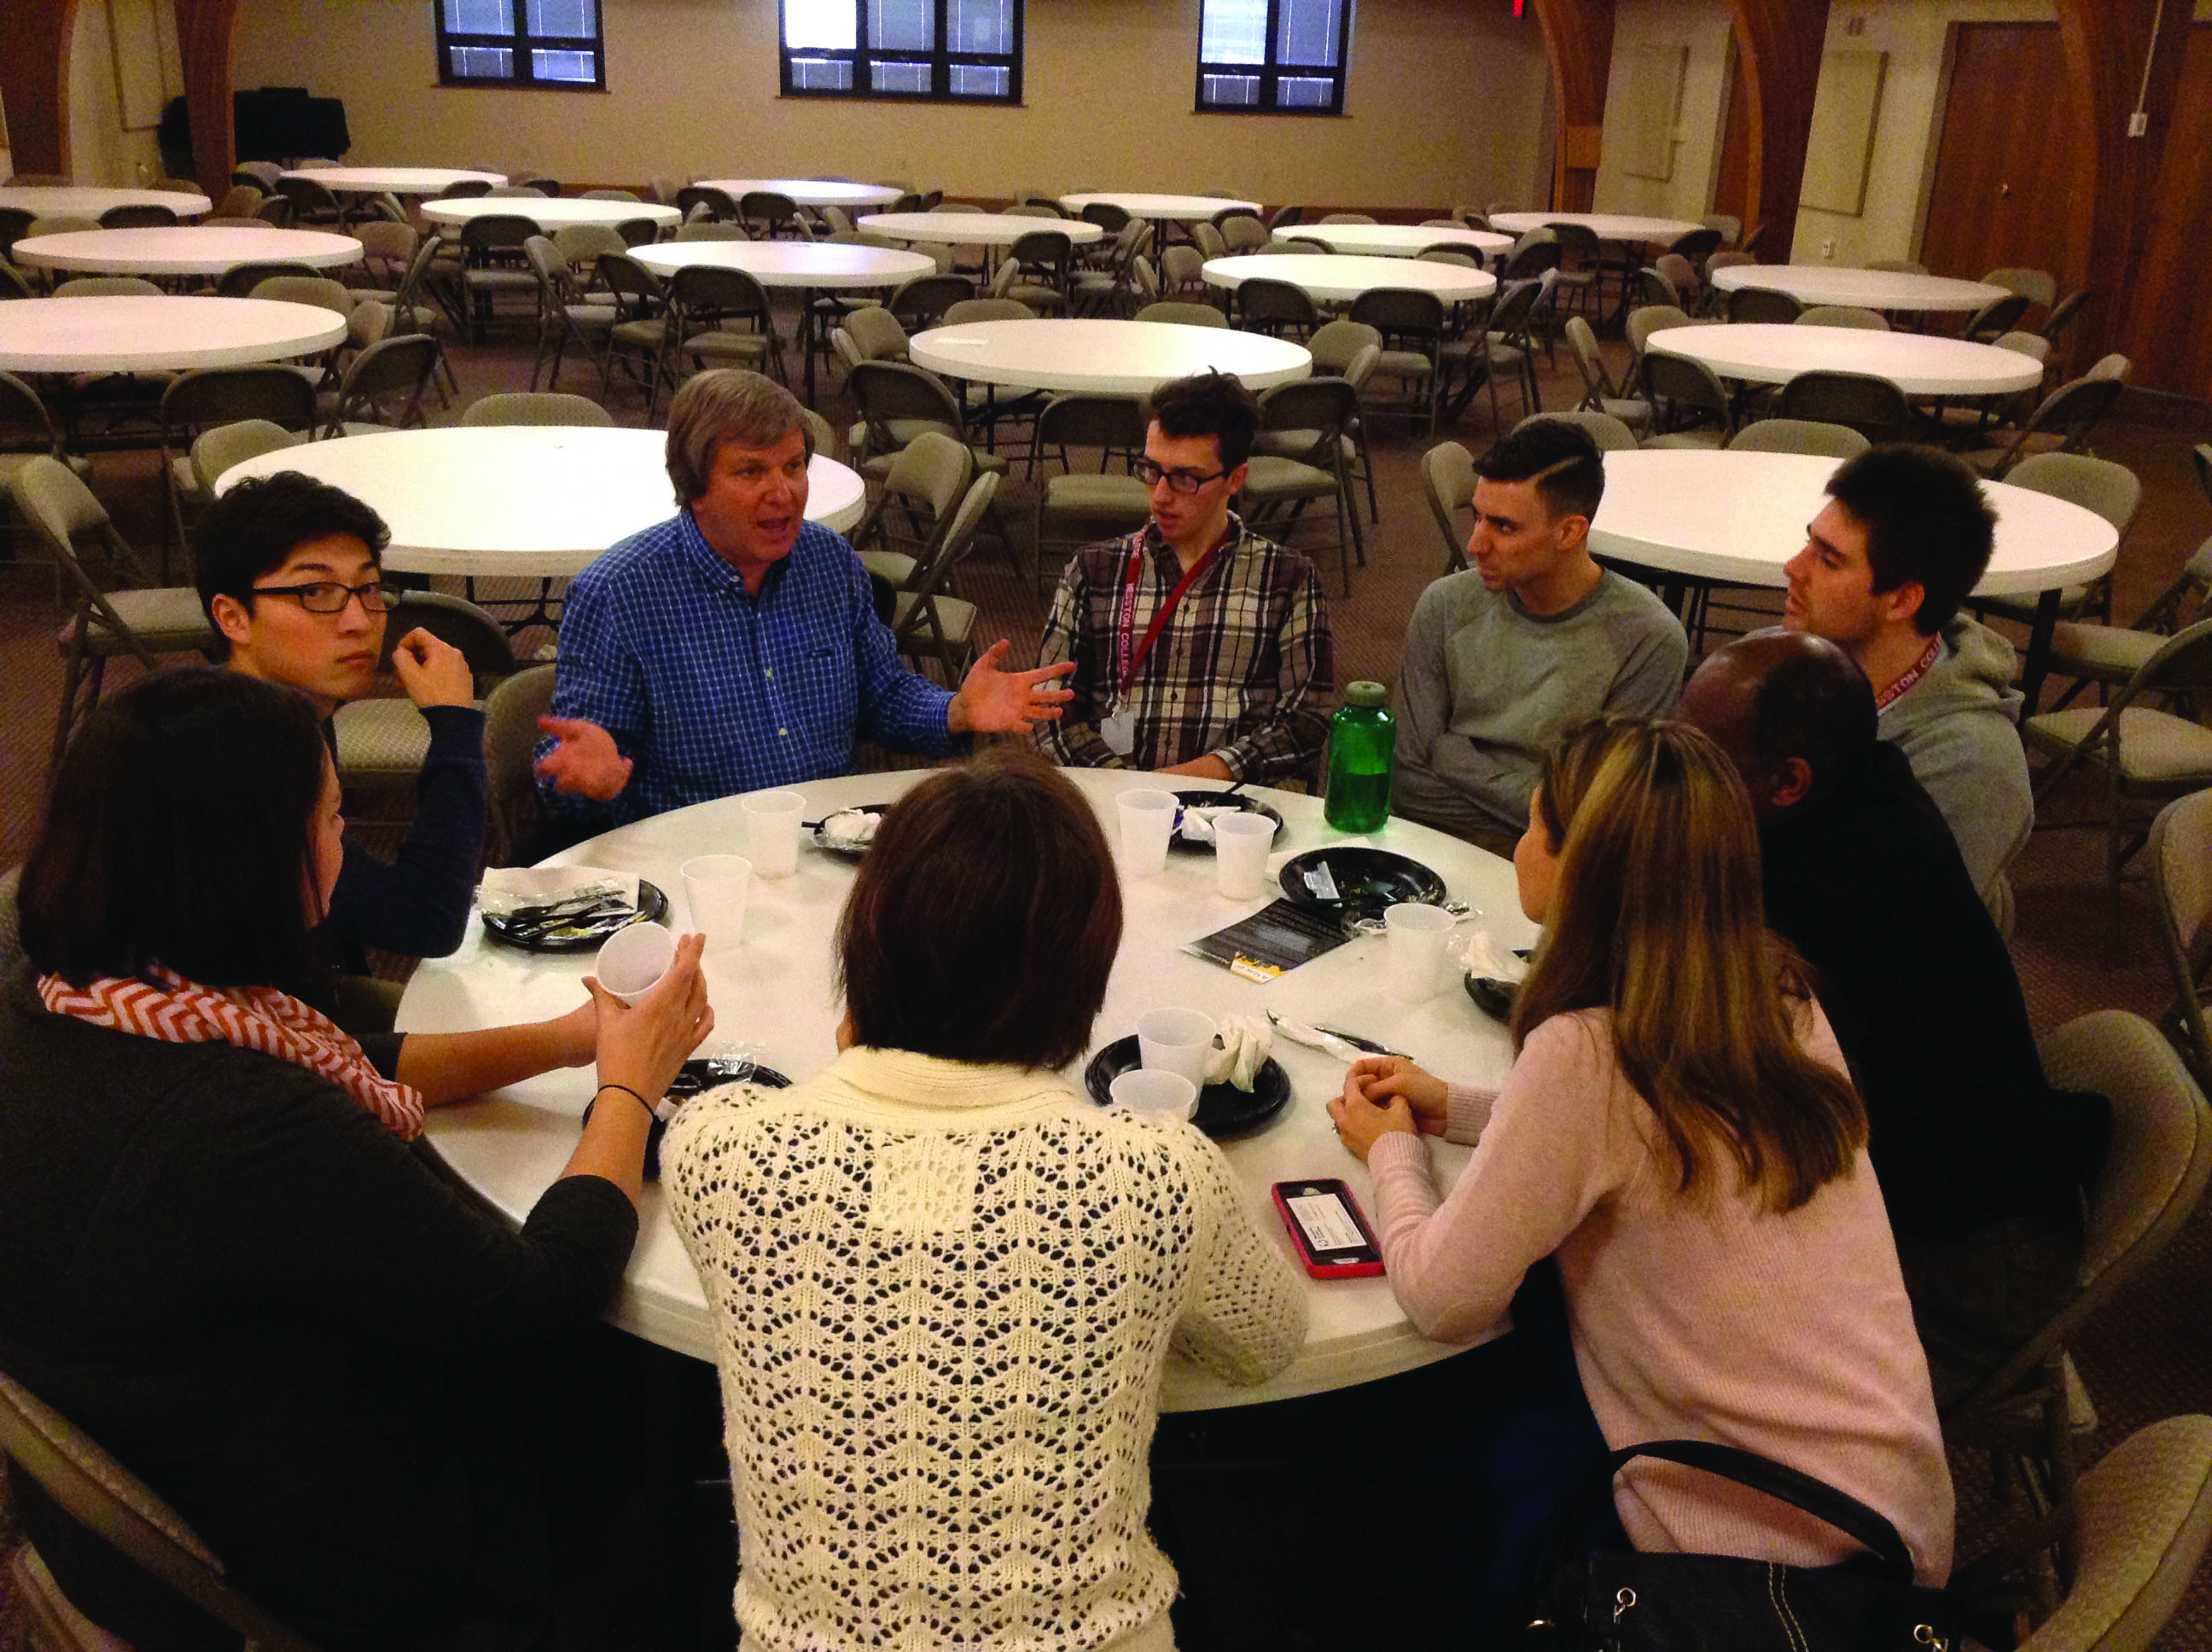 Students attend Intercollegiate Peace Fellowship Conference